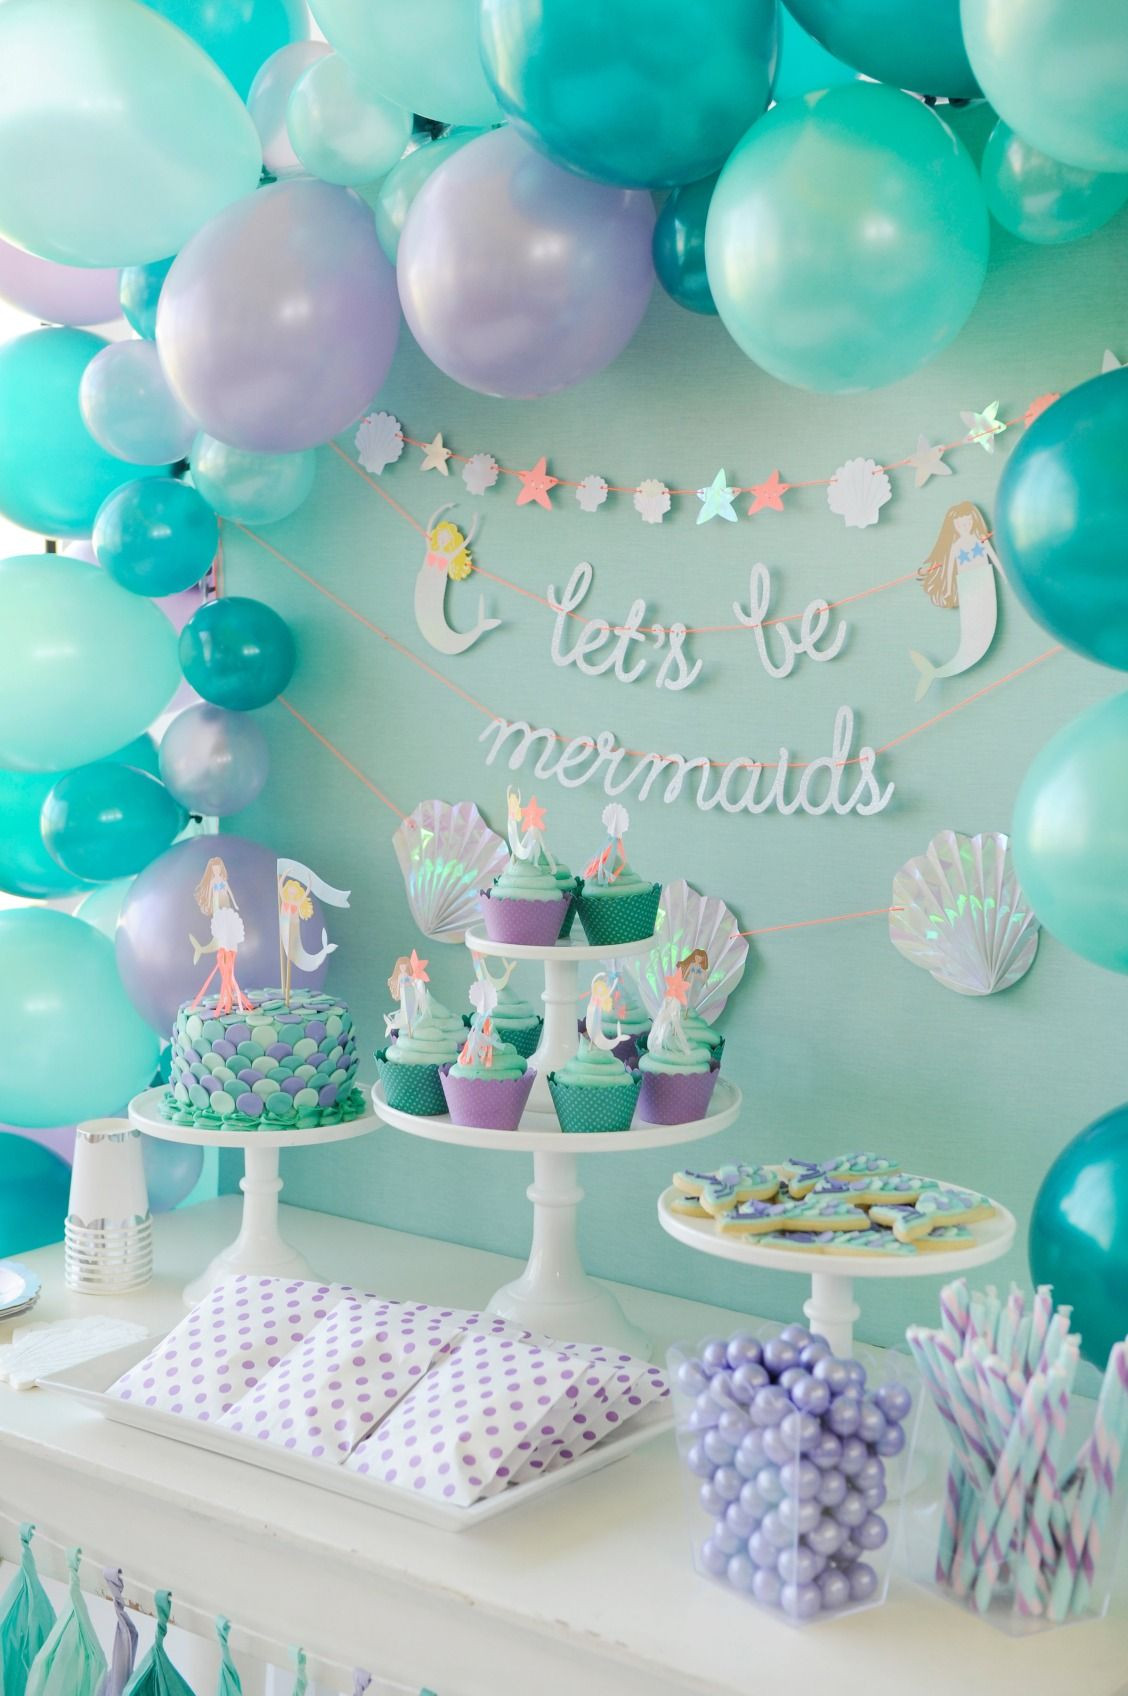 Best ideas about Mermaid Themed Birthday Party . Save or Pin Single Post Children s Birthday Party Now.